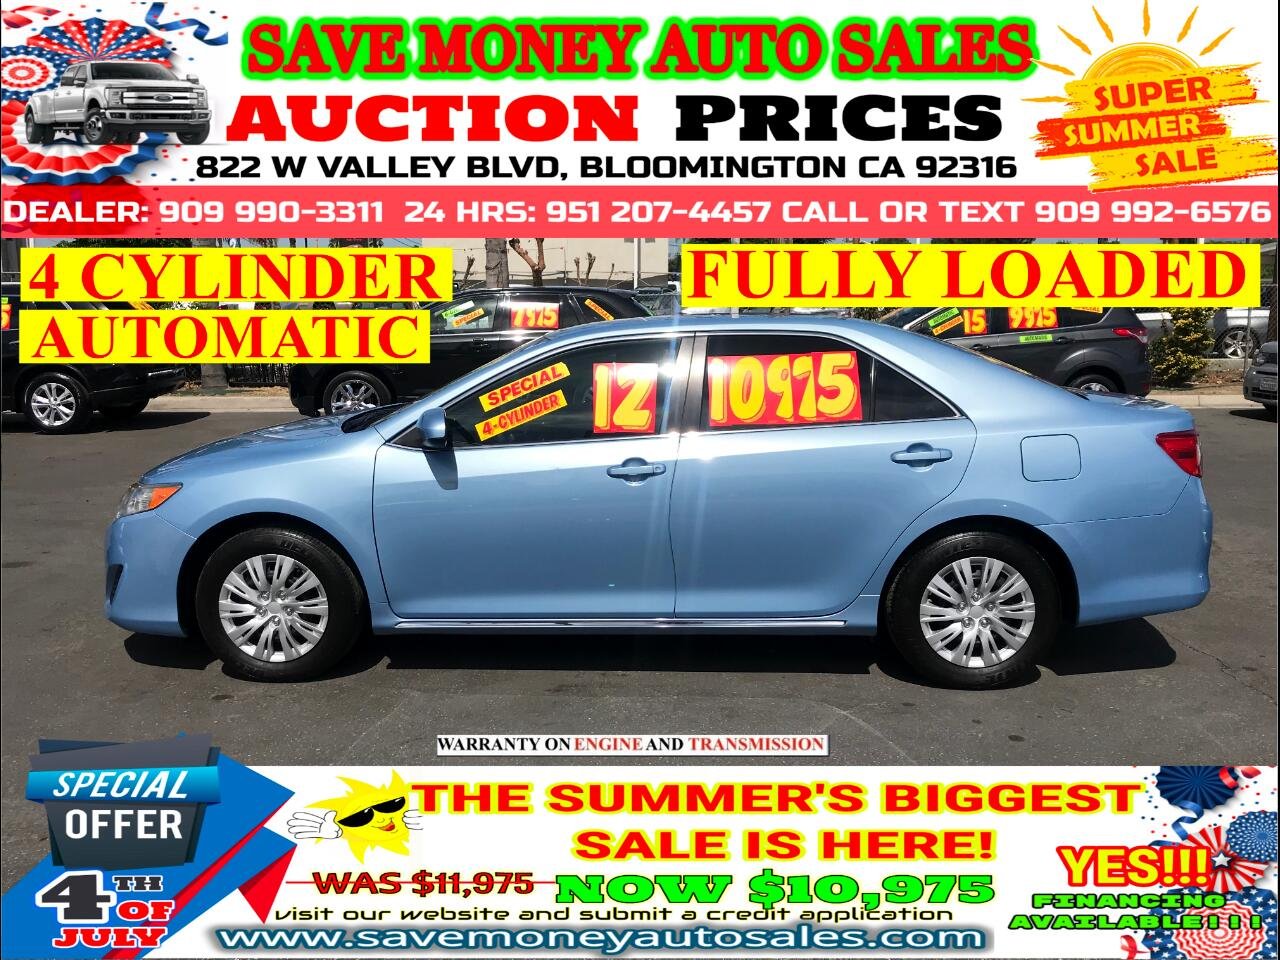 2012 Toyota Camry LE> 4 CYLINDER> FULLY LOADED> AUTOMATIC